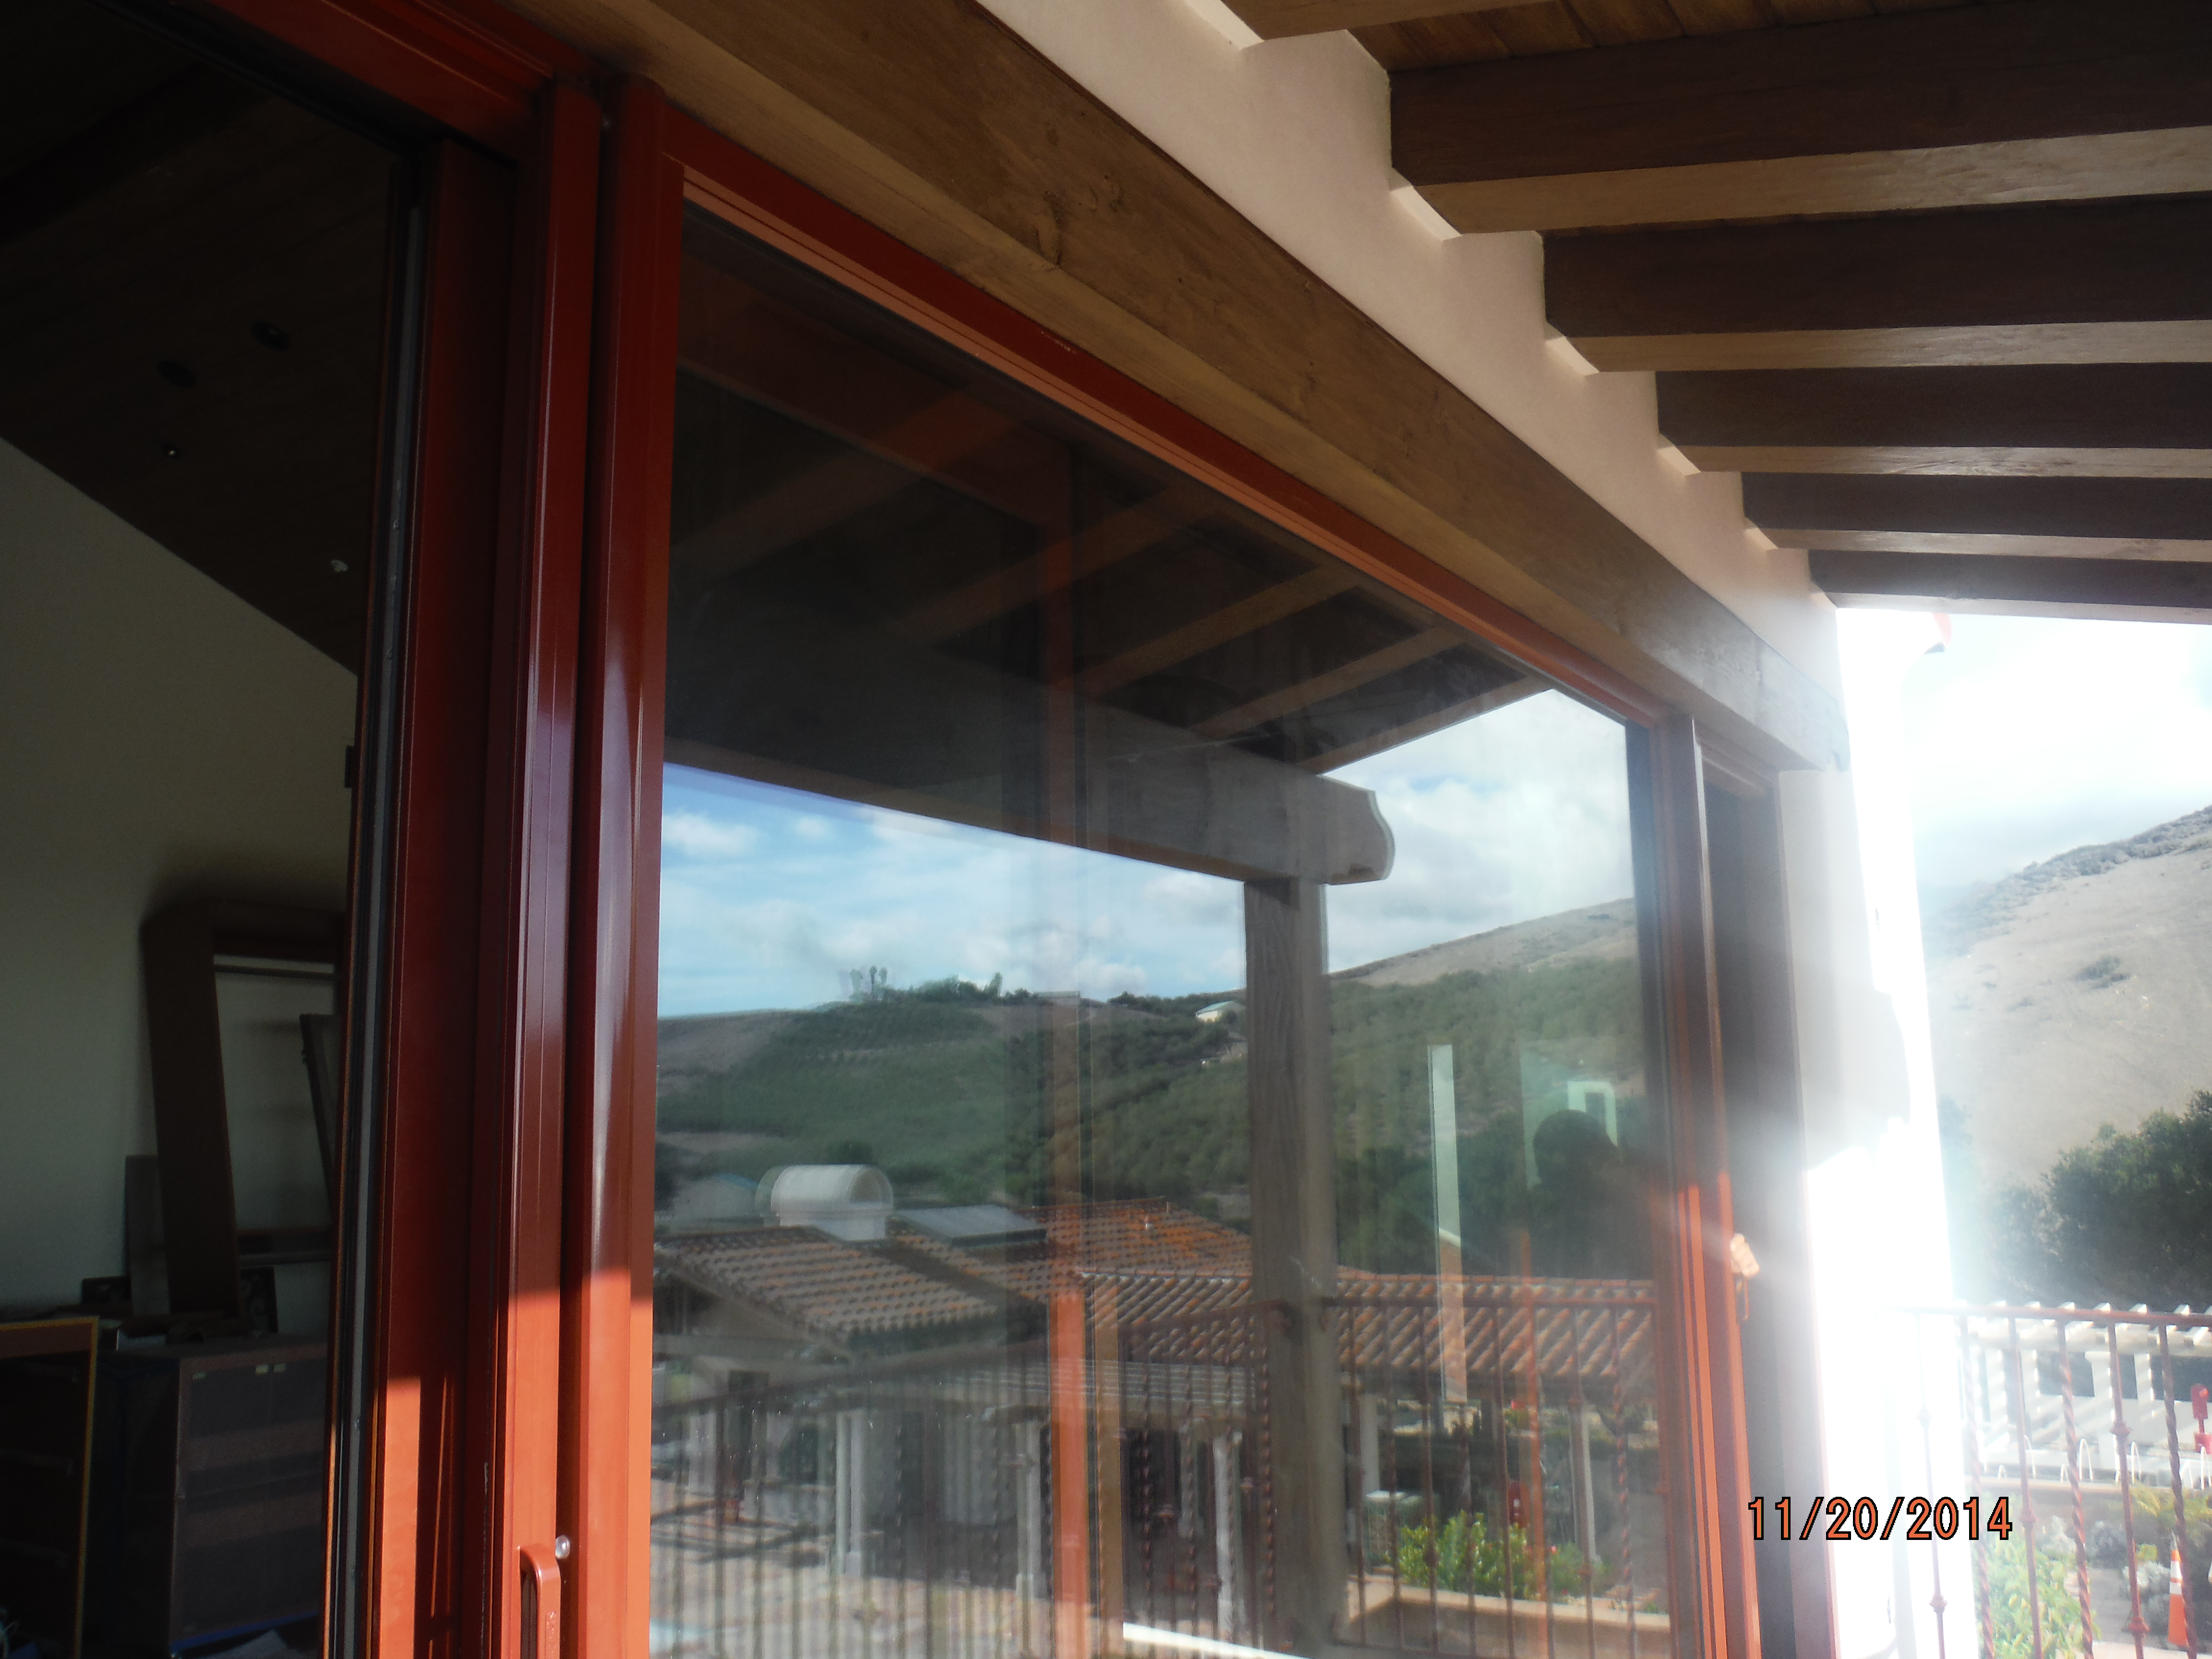 Retractable Screen Doors Installed On The Outside Of The